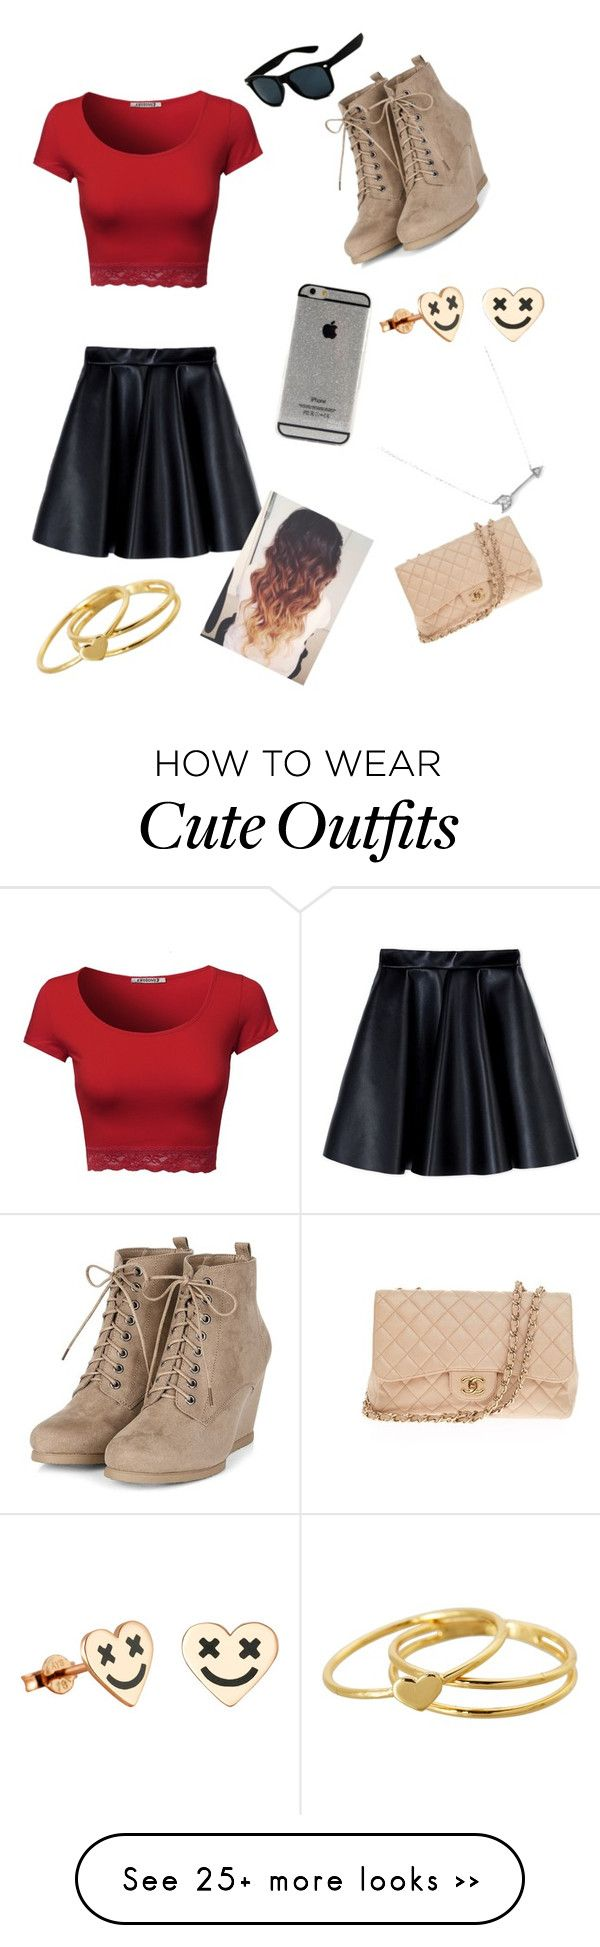 """cute outfit date night"" by victoriasierravs on Polyvore featuring MSGM, Gorjana, Chanel and Adina Reyter"